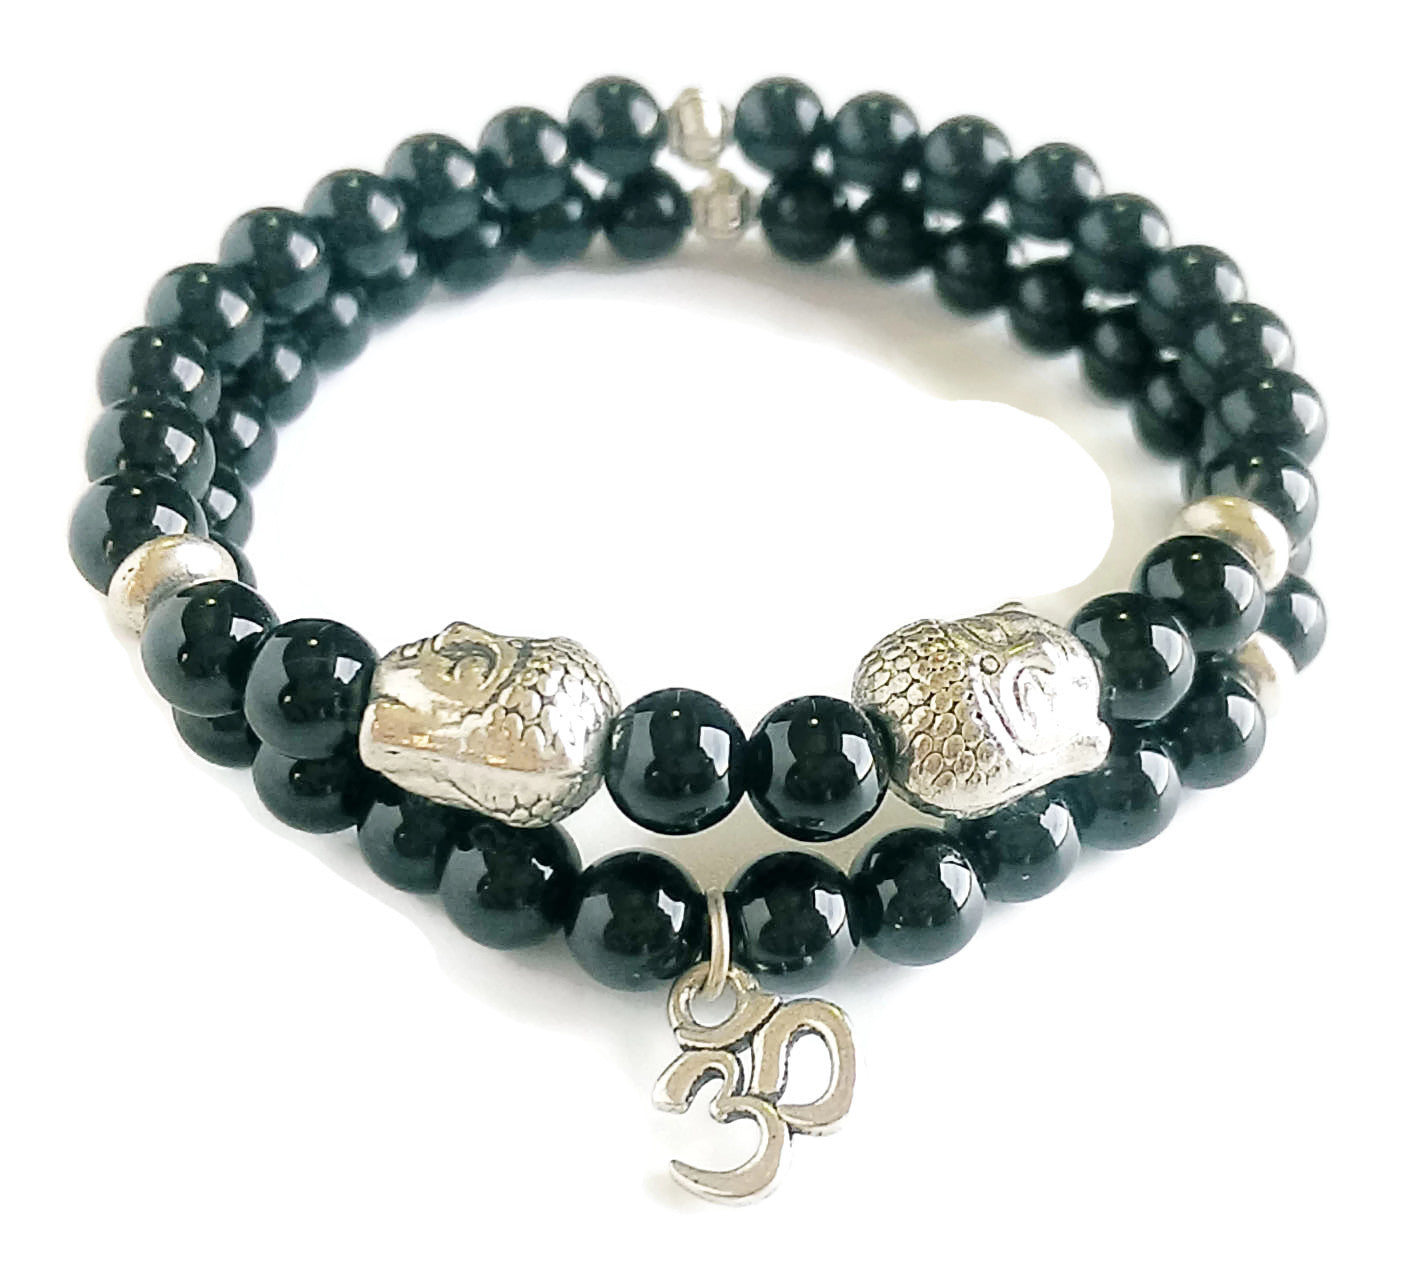 6mm Sandstone Bead Meditation Yoga Stretch Stackable Wrist Mala Focus Energy Bracelet Set Third Eye Chakra Silver Buddha OM Charm